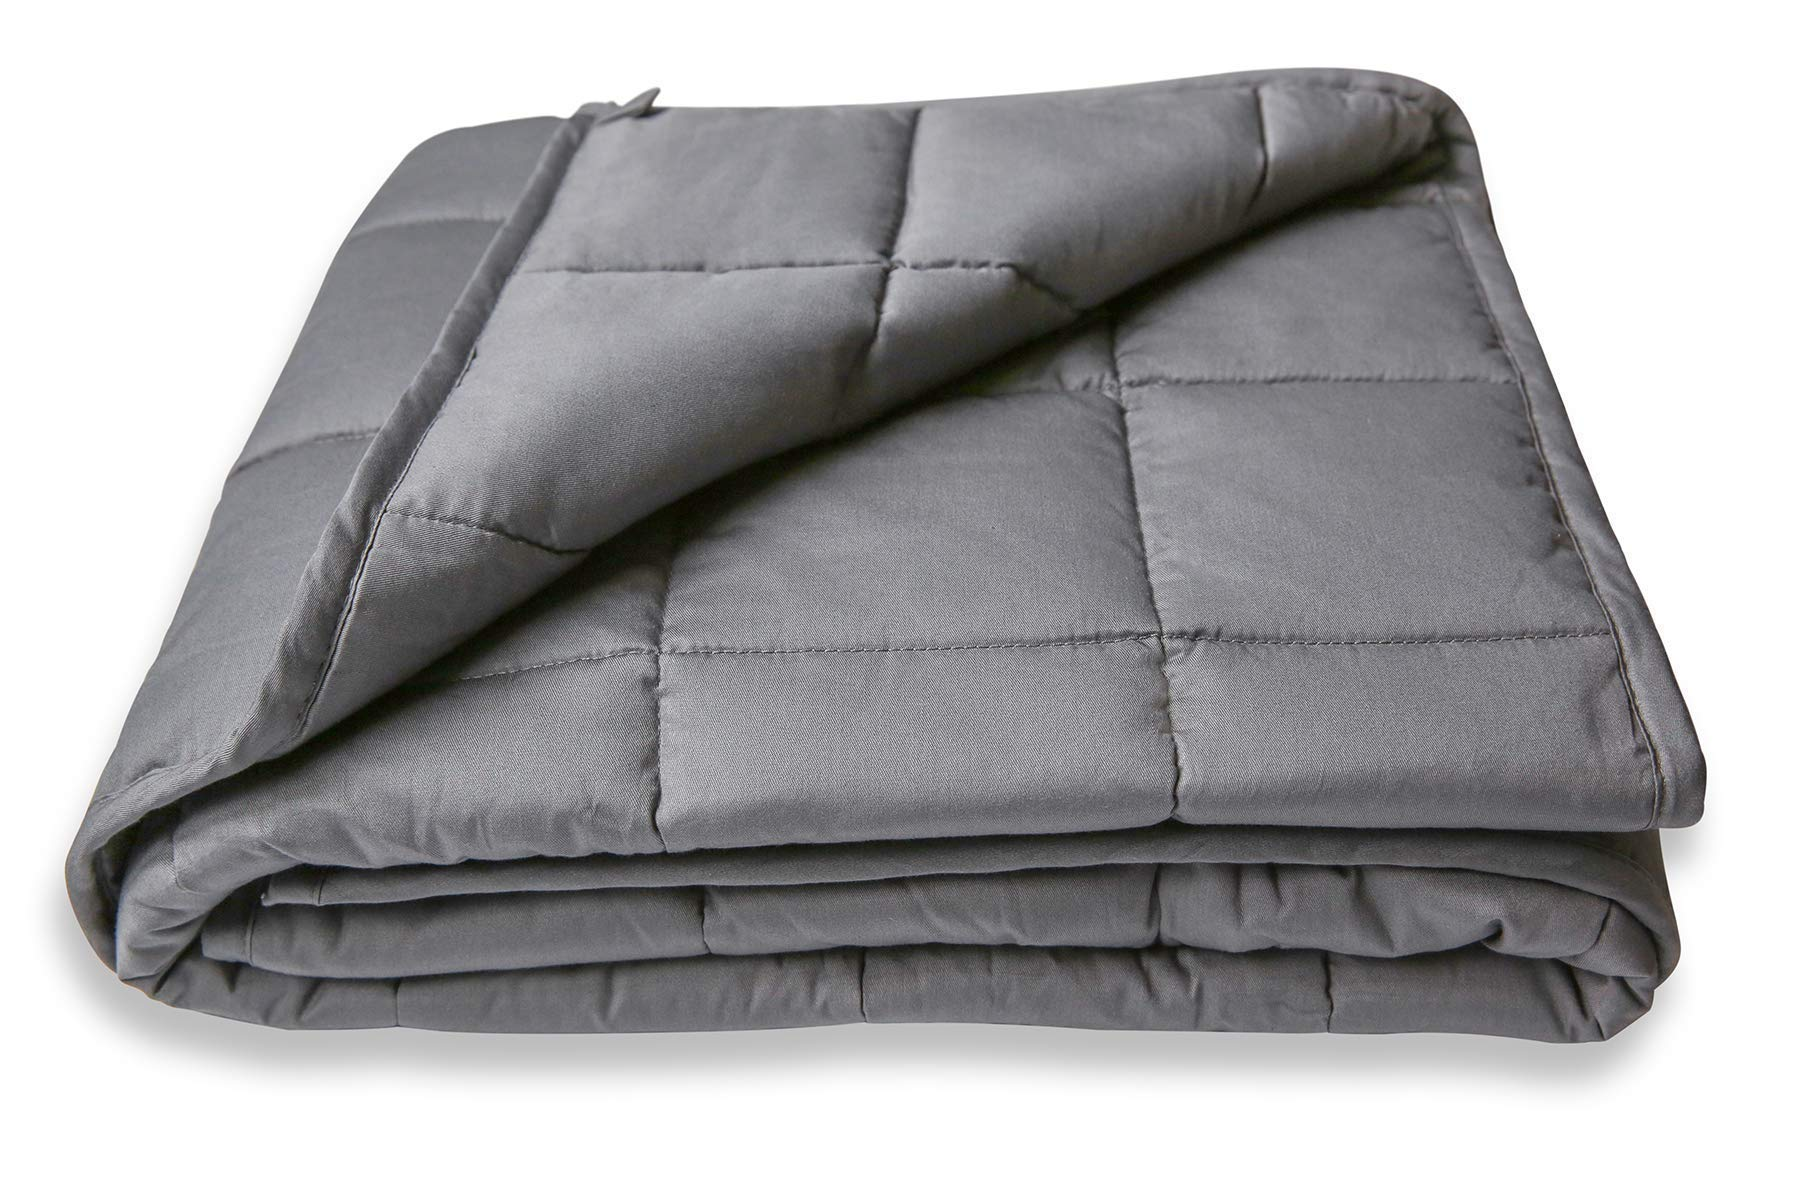 Legendary Comfort Kids Weighted Blanket 5 Lbs - Breathable Cotton with Premium Glass Beads - Heavy Weighted Blanket for Kids 40-70 lbs | Anxiety | Stress | Designed in USA. (Dark Grey, 5 Lbs 36''x48'')